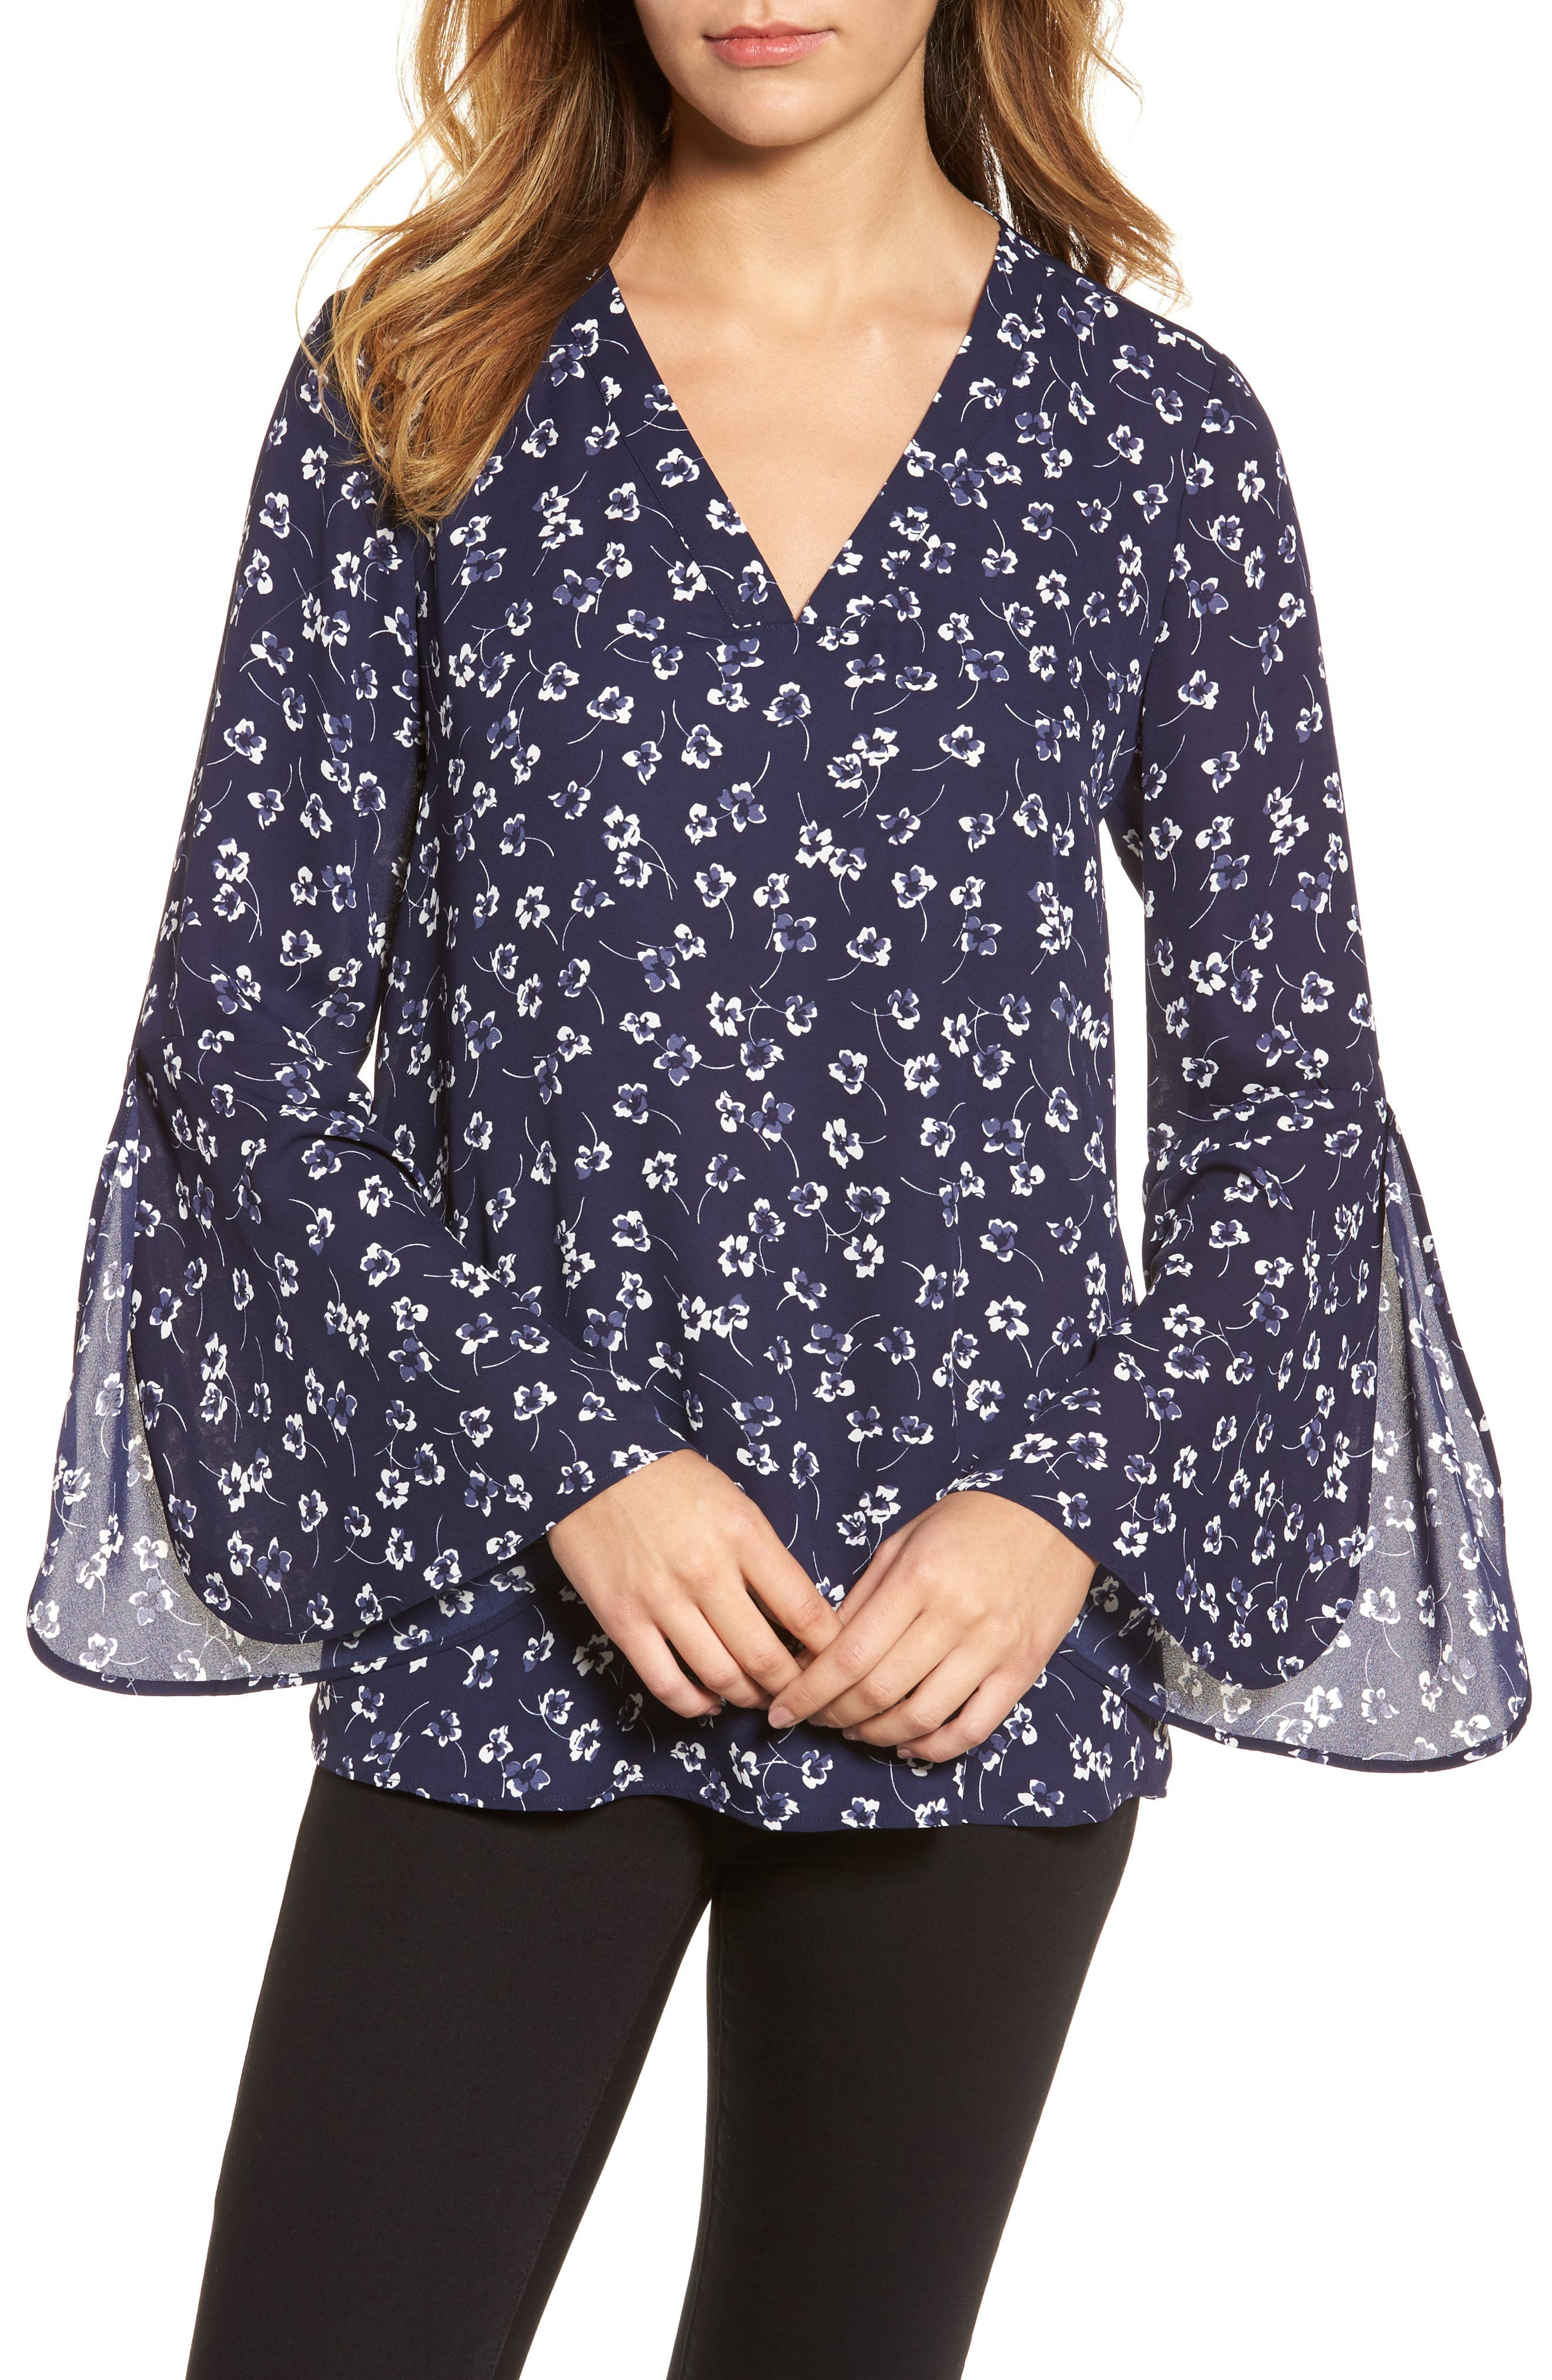 Alternate Image 1 Selected - Chaus Ditsy Floral Print Bell Sleeve Blouse